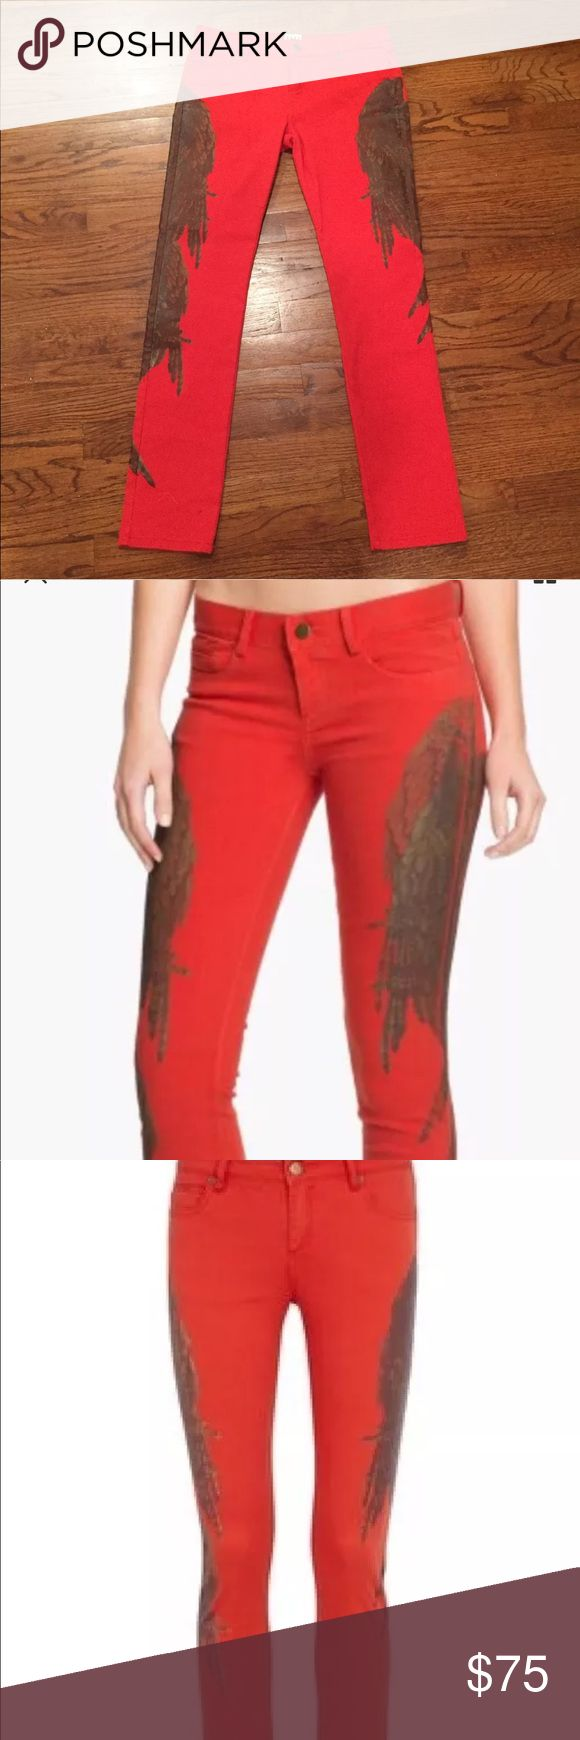 HAUTE HIPPIE RED DENIM SKINNY JEANS PANTS Gorgeous red denim jeans pants by famous designer Haute Hippie. These pants can be worn during every season and both during the day or night. You are bound to always get a WOW from your friends. The feathers are a common motif in this brands items! Haute Hippie Jeans Skinny